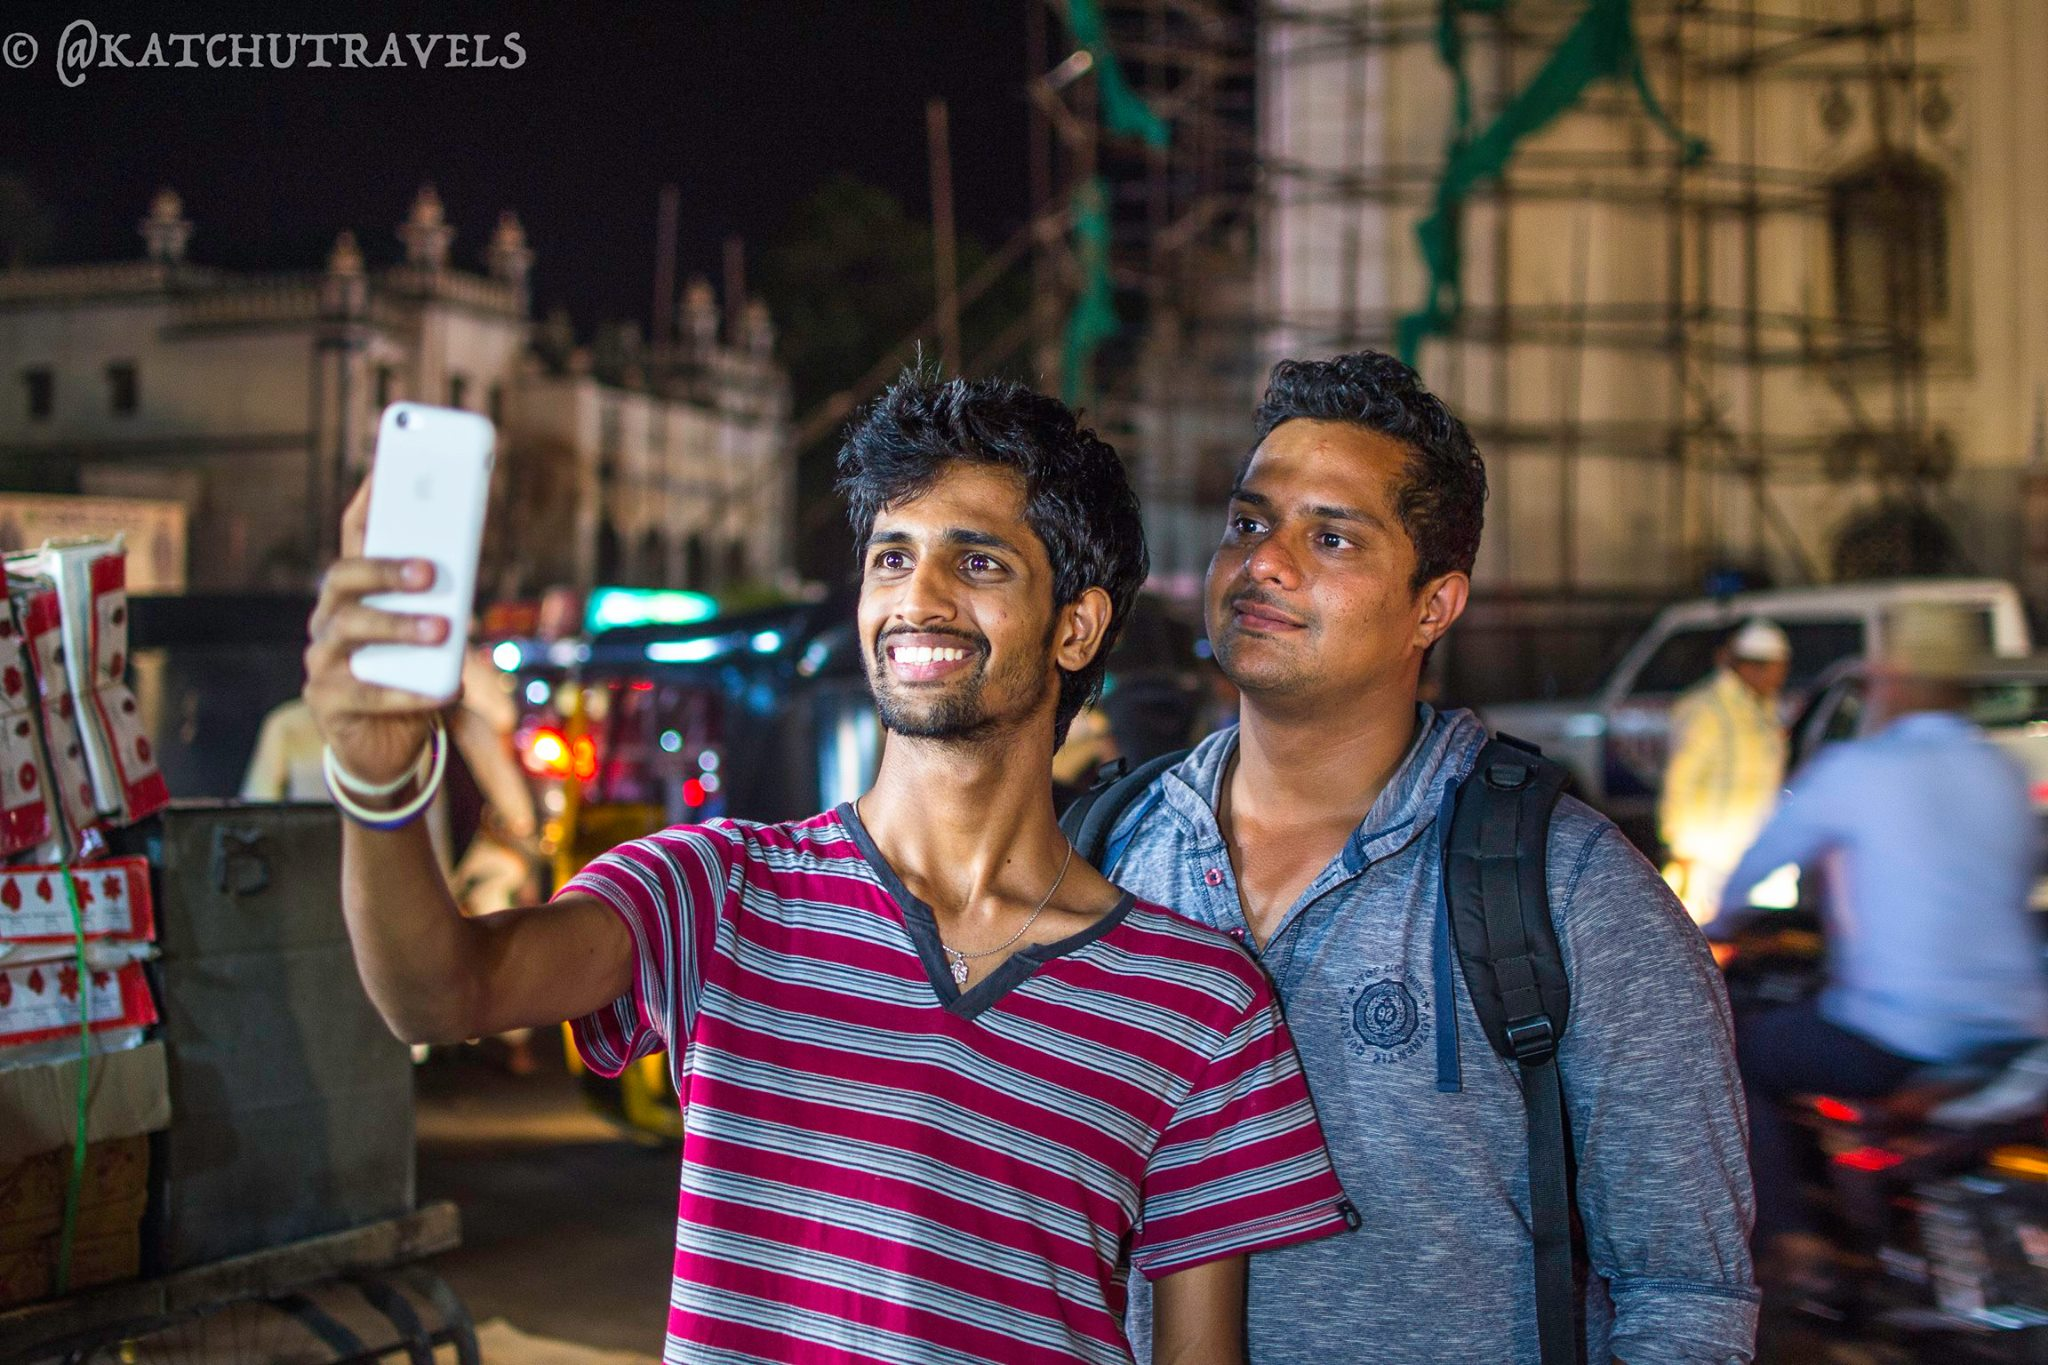 Travellers taking a Charminar Selfie